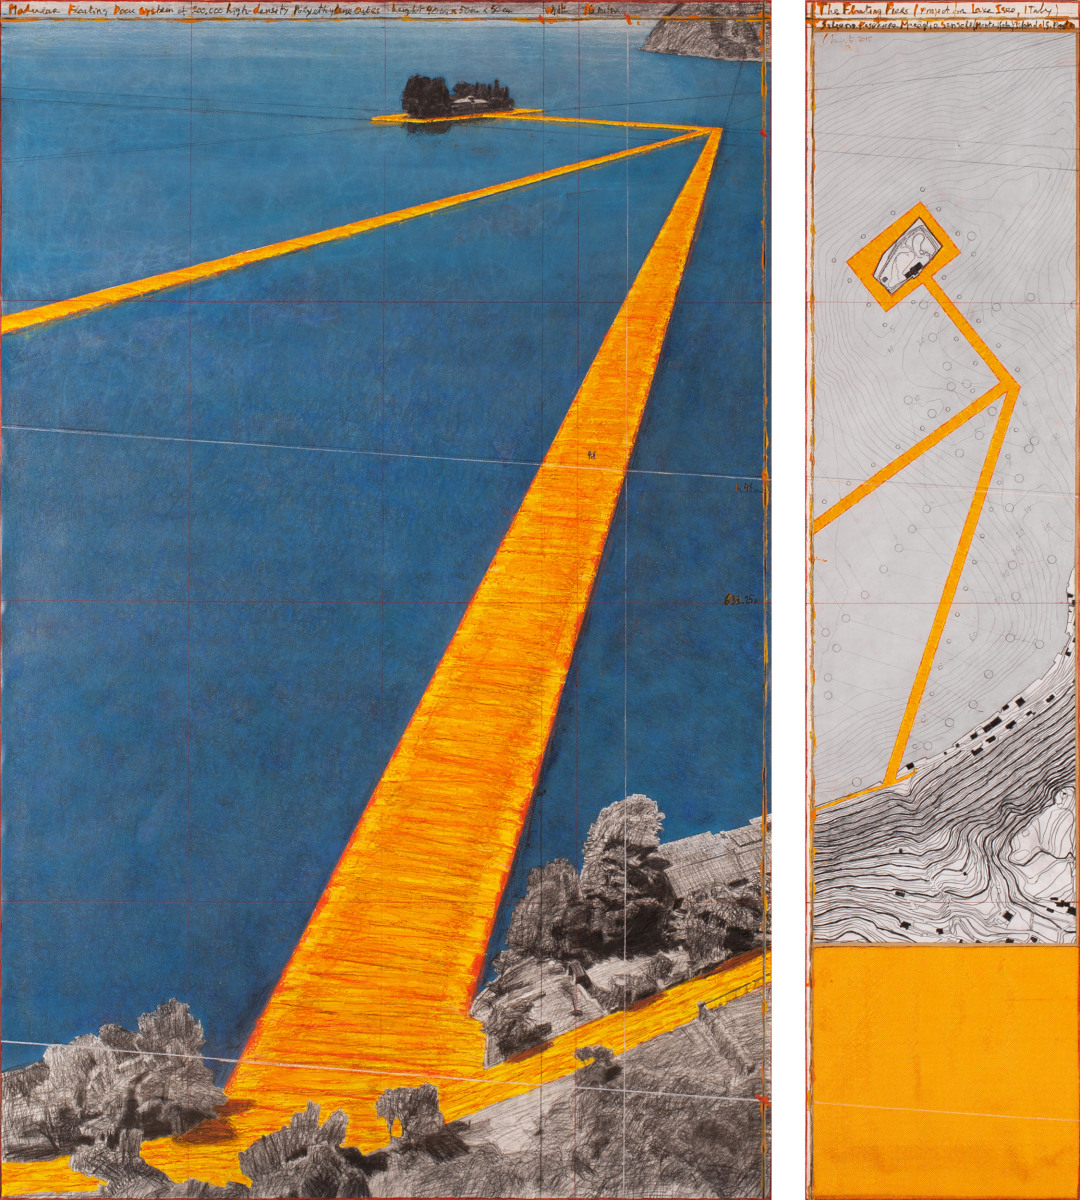 The Peir: Christo's 'Floating Piers' Artwork Lets People Walk Across